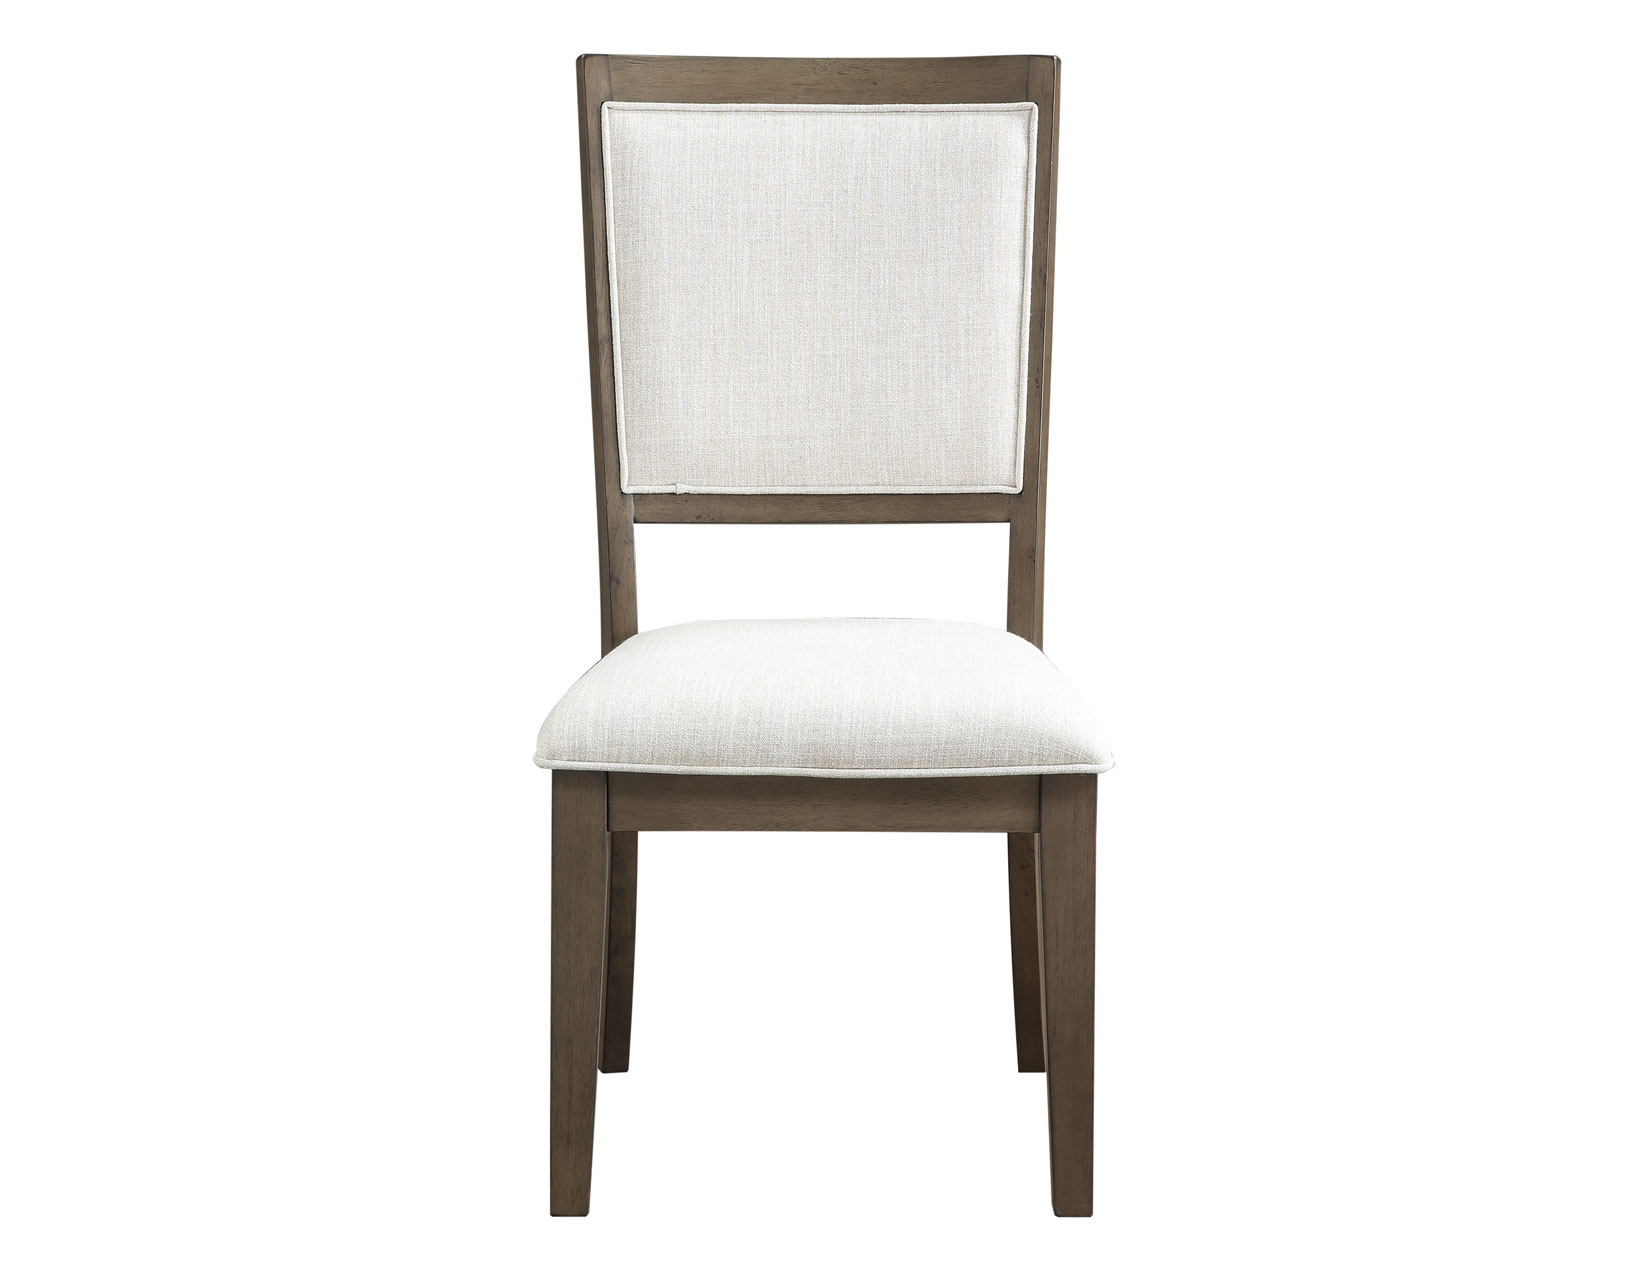 Bordeaux Dining Chair by Steve Silver at Northeast Factory Direct